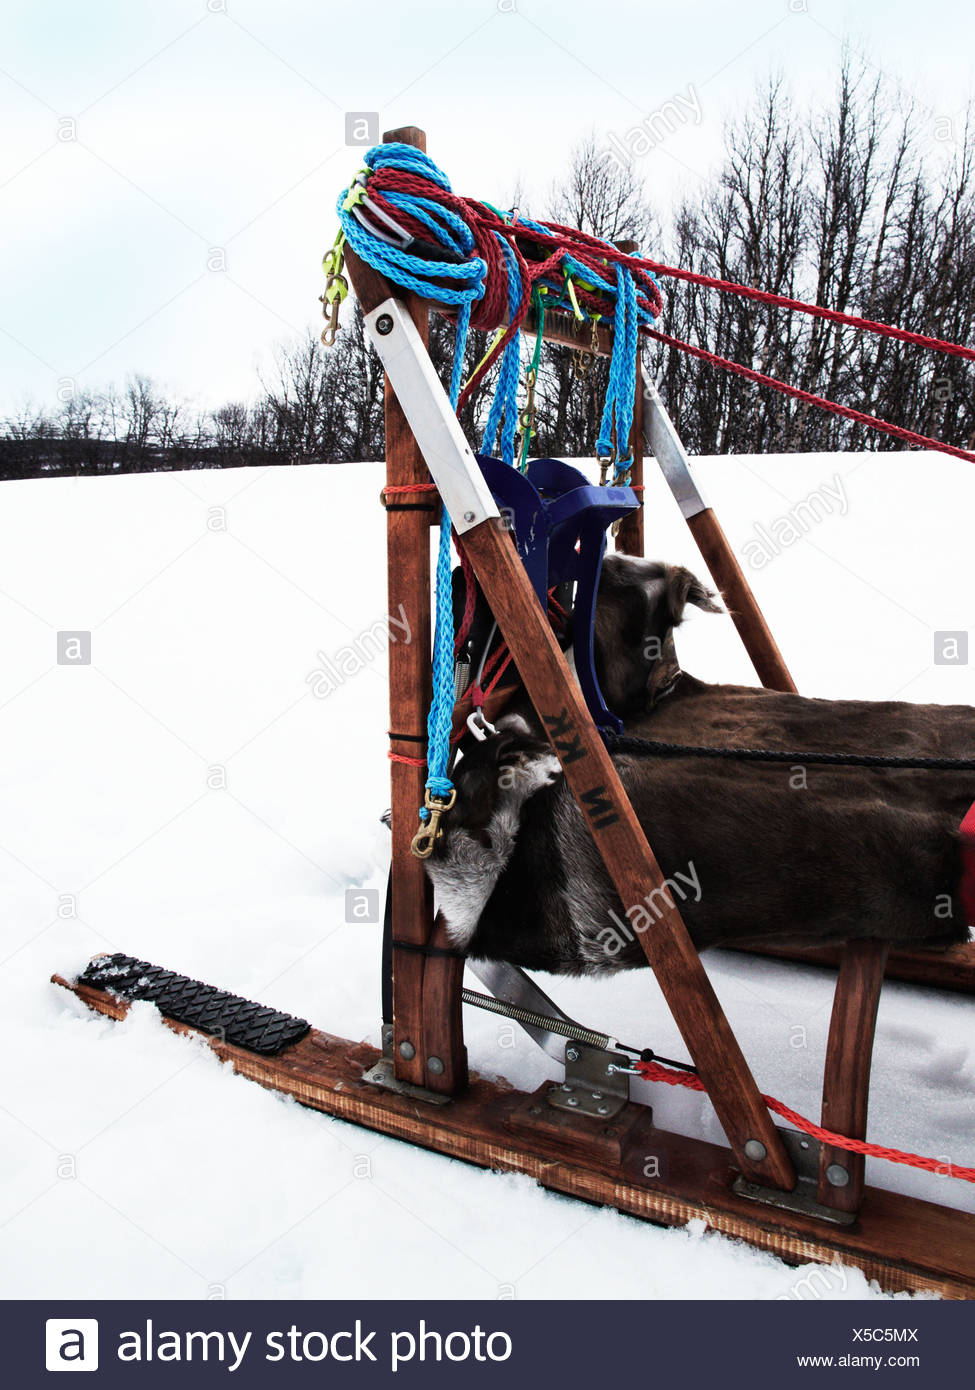 A dog sledge in the snow, Sweden. Stock Photo